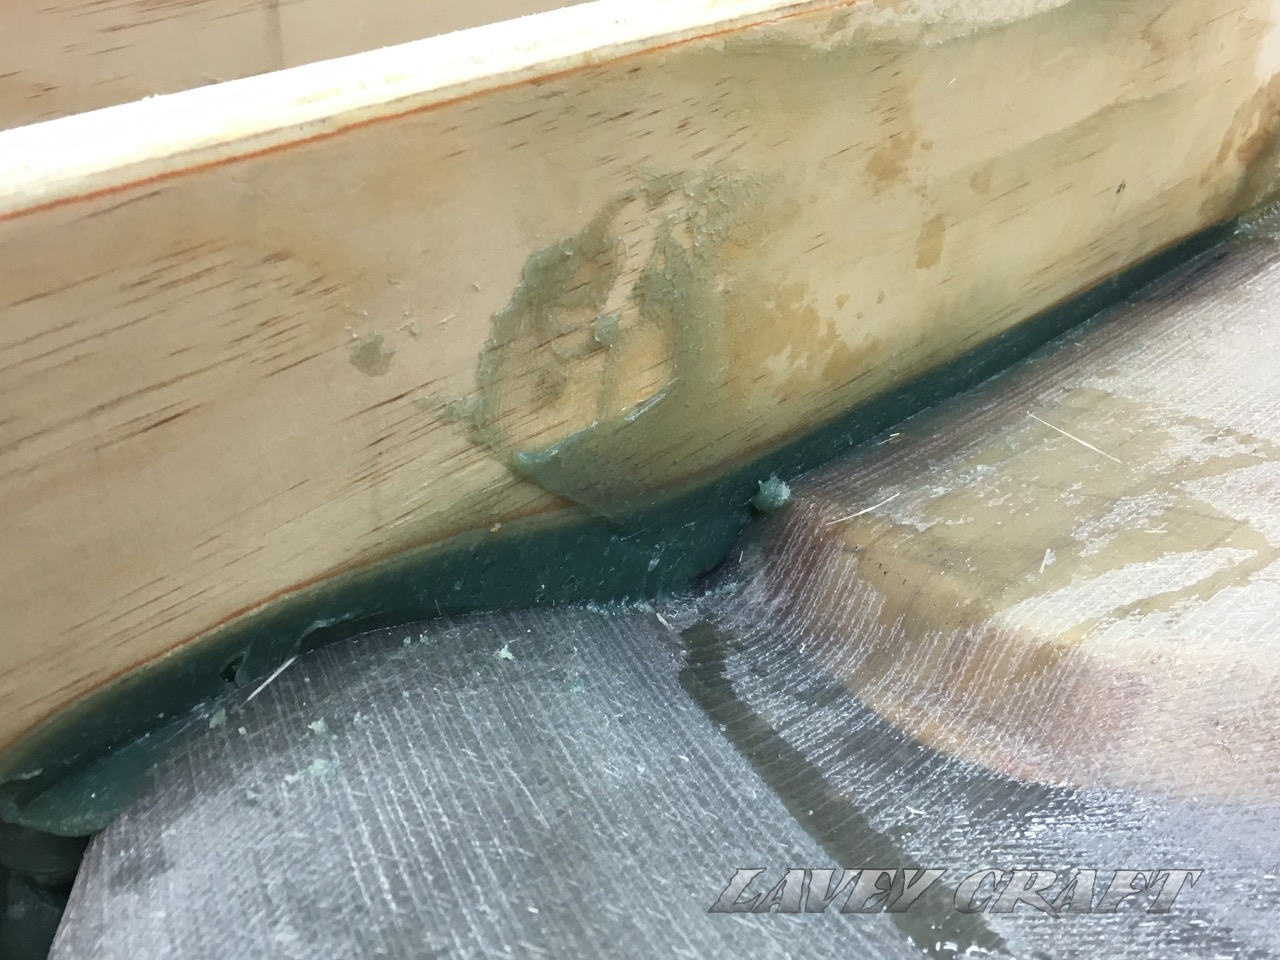 Filling the gaps between bottom of the hull and stringers for perfect bondage.